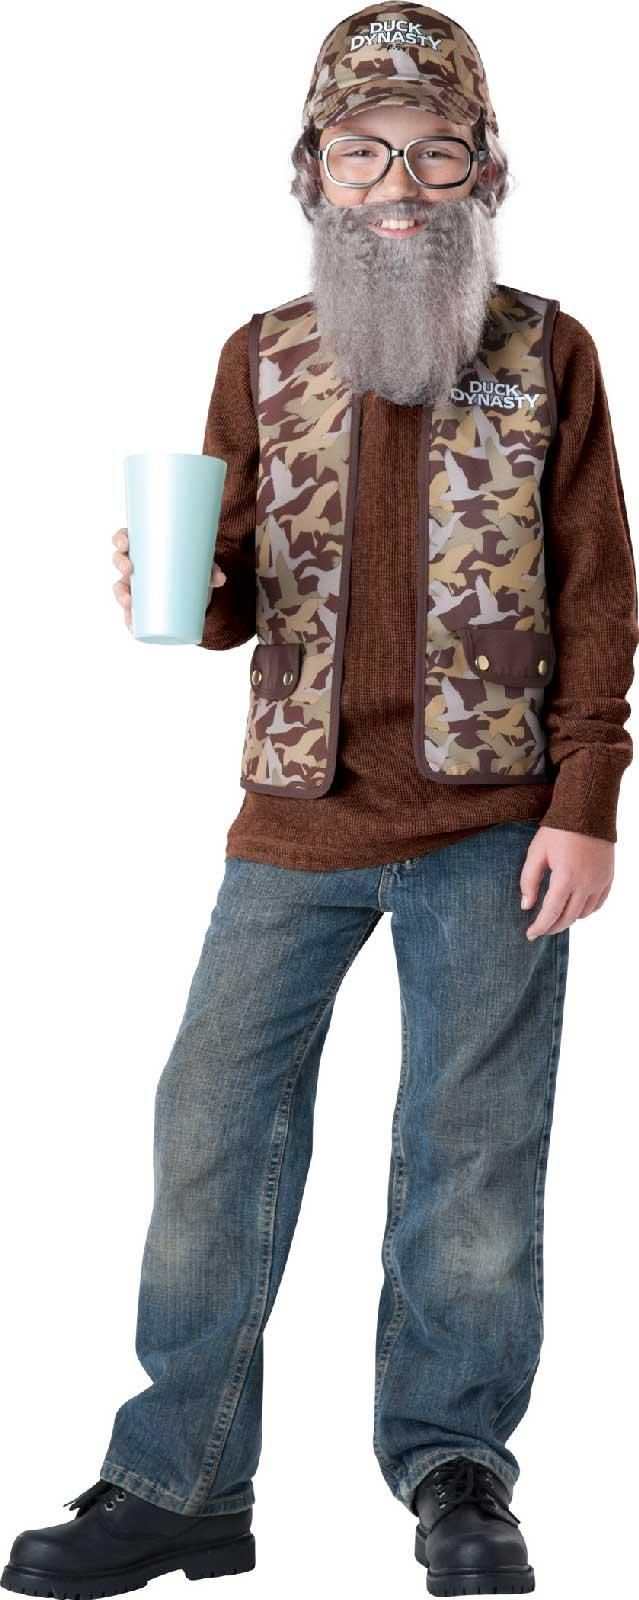 Duck Dynasty - Uncle Si Child Costume from Buycostumes.com